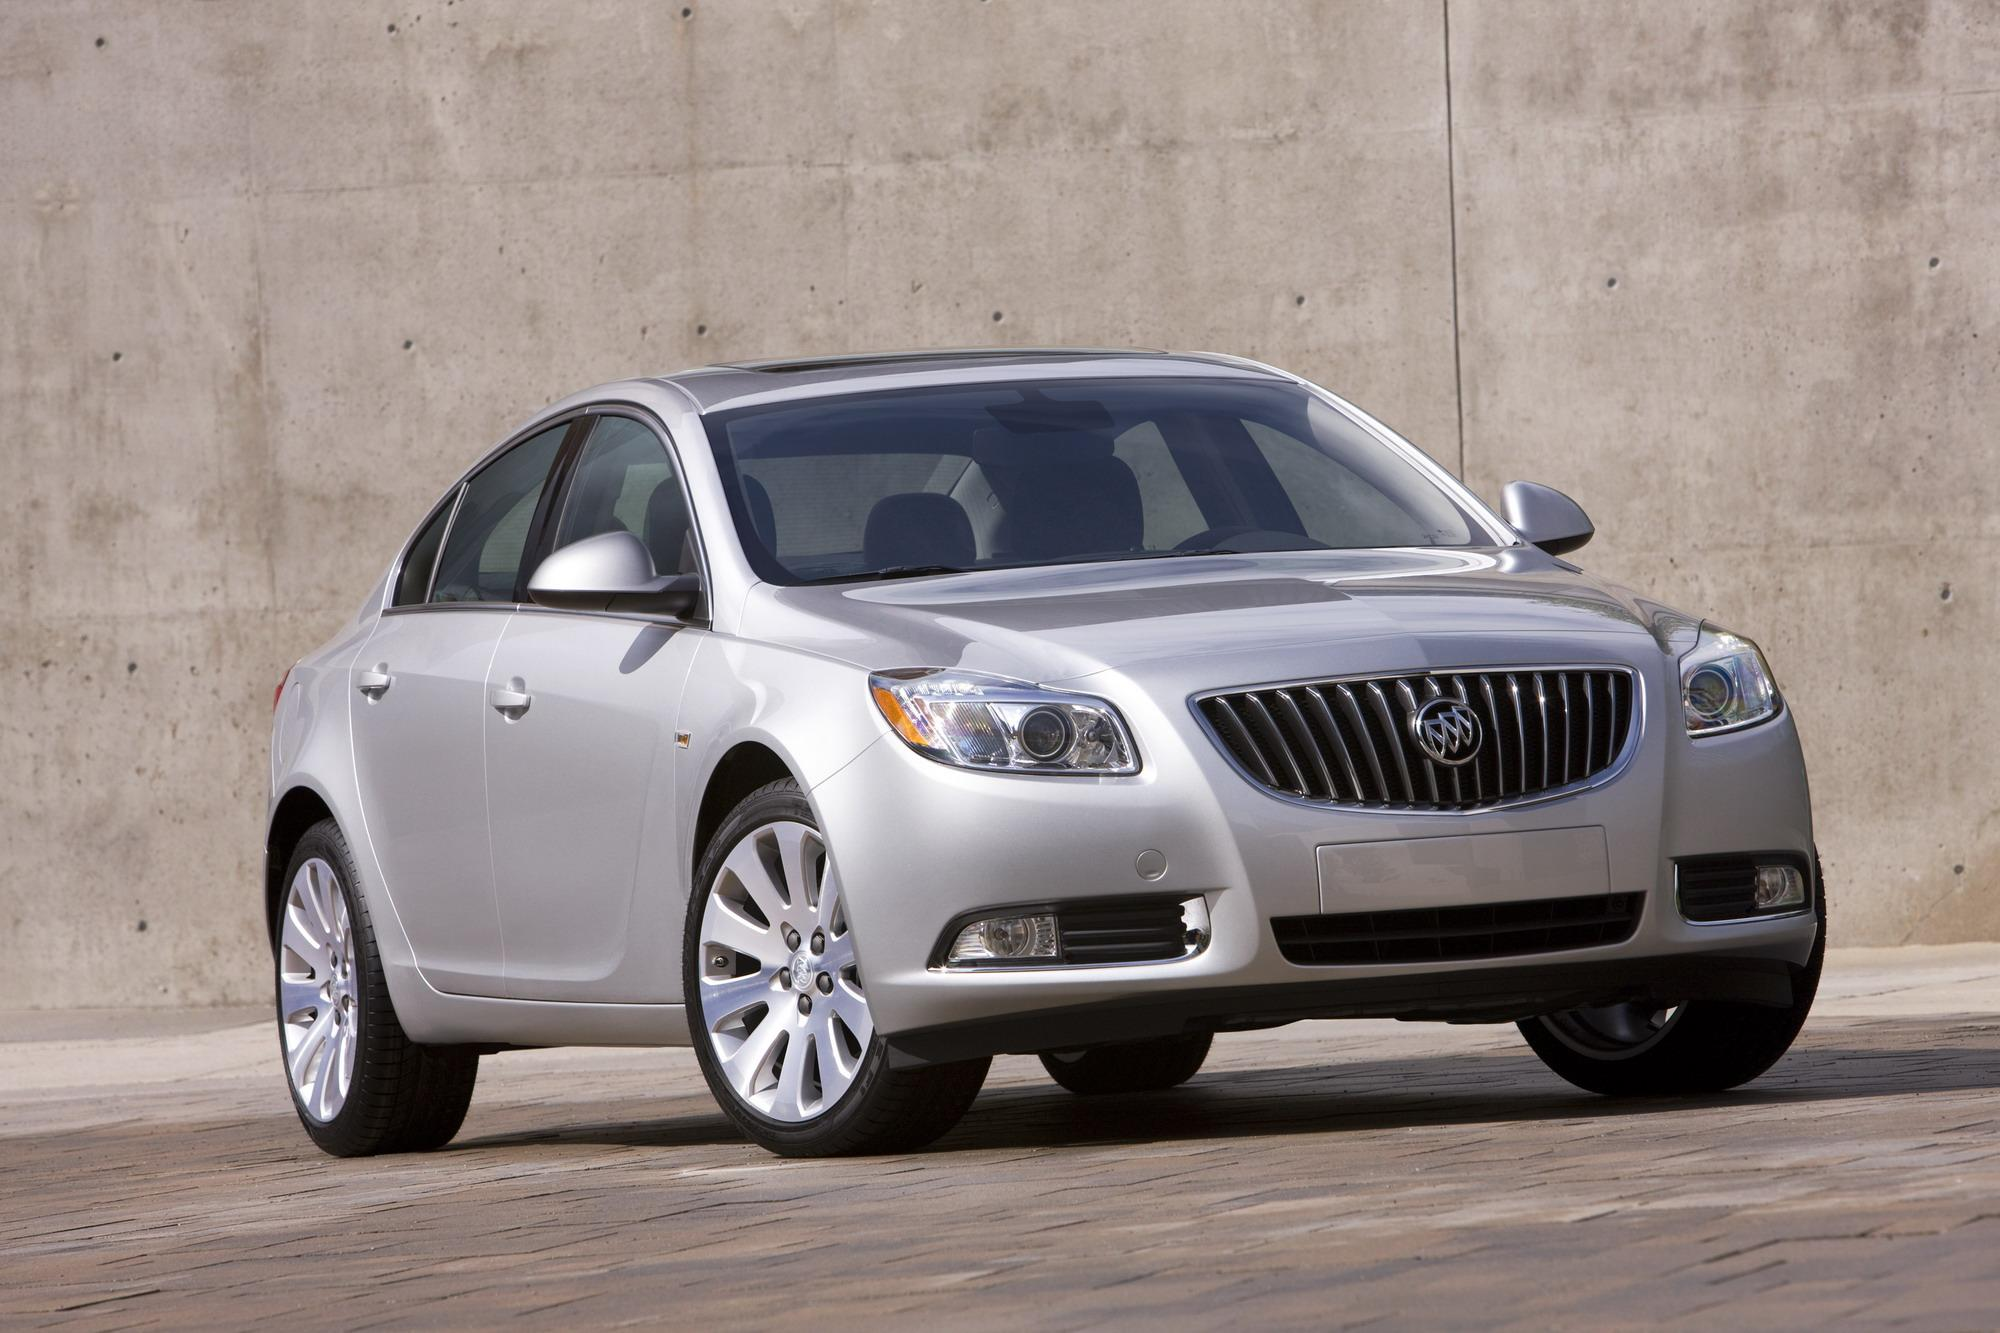 Buick Regal: Traction Control System (TCS)StabiliTrak Light